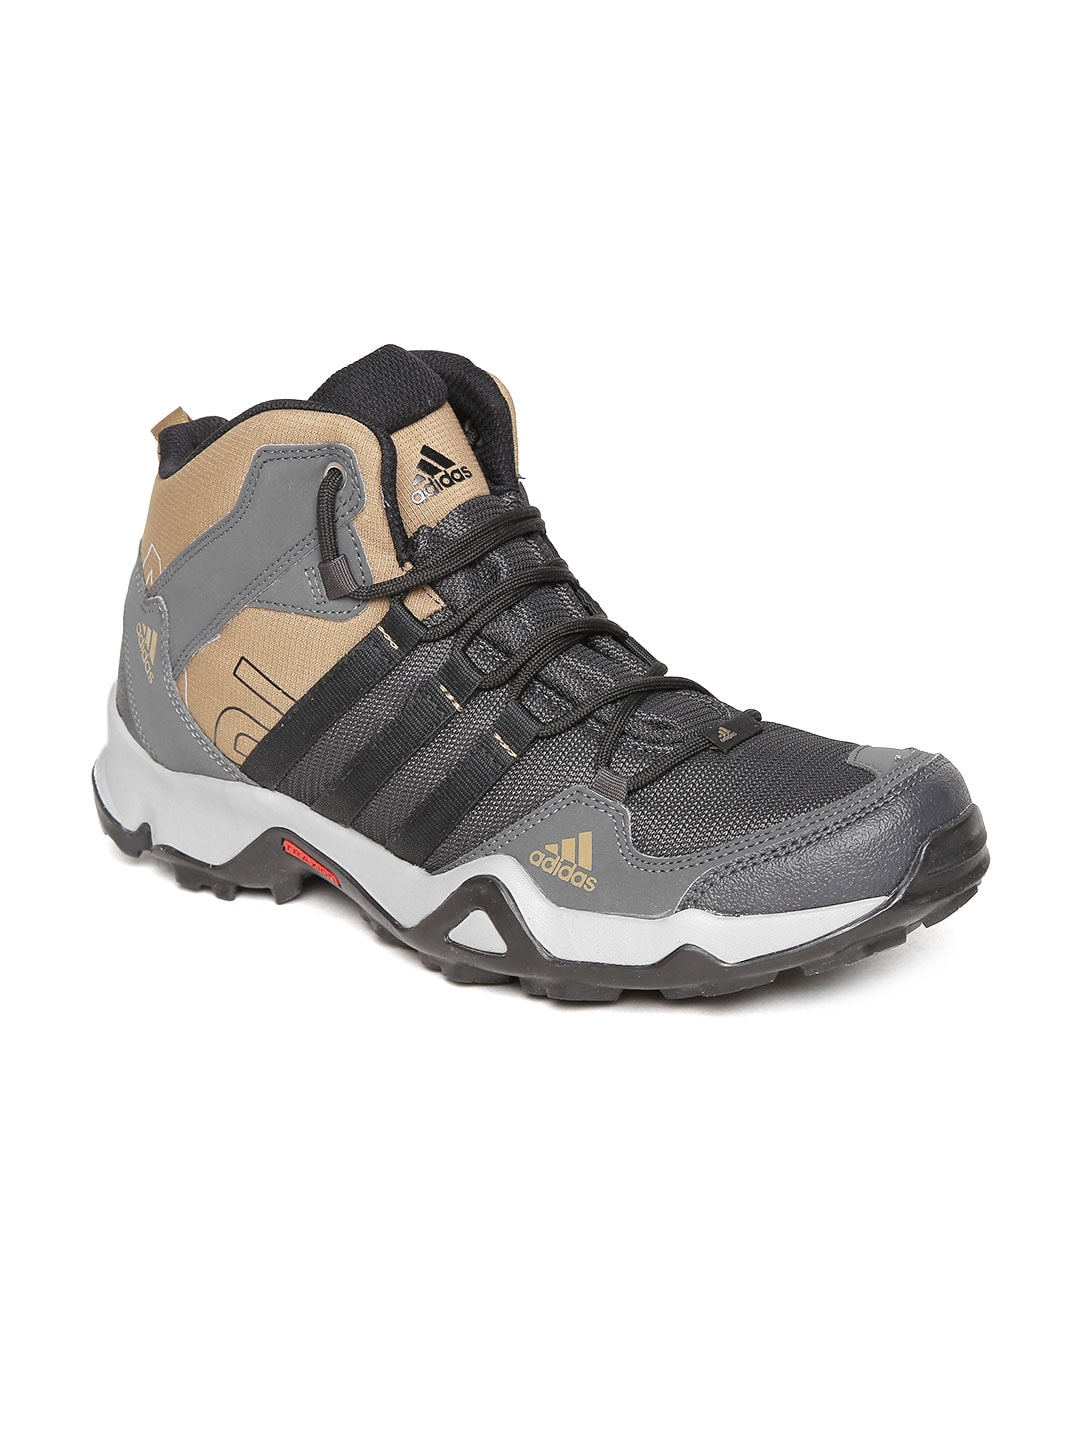 3c99bc075cd32b Adidas ba5385 Men Charcoal Grey Ax2 Mid Mid Top Trekking Shoes- Price in  India